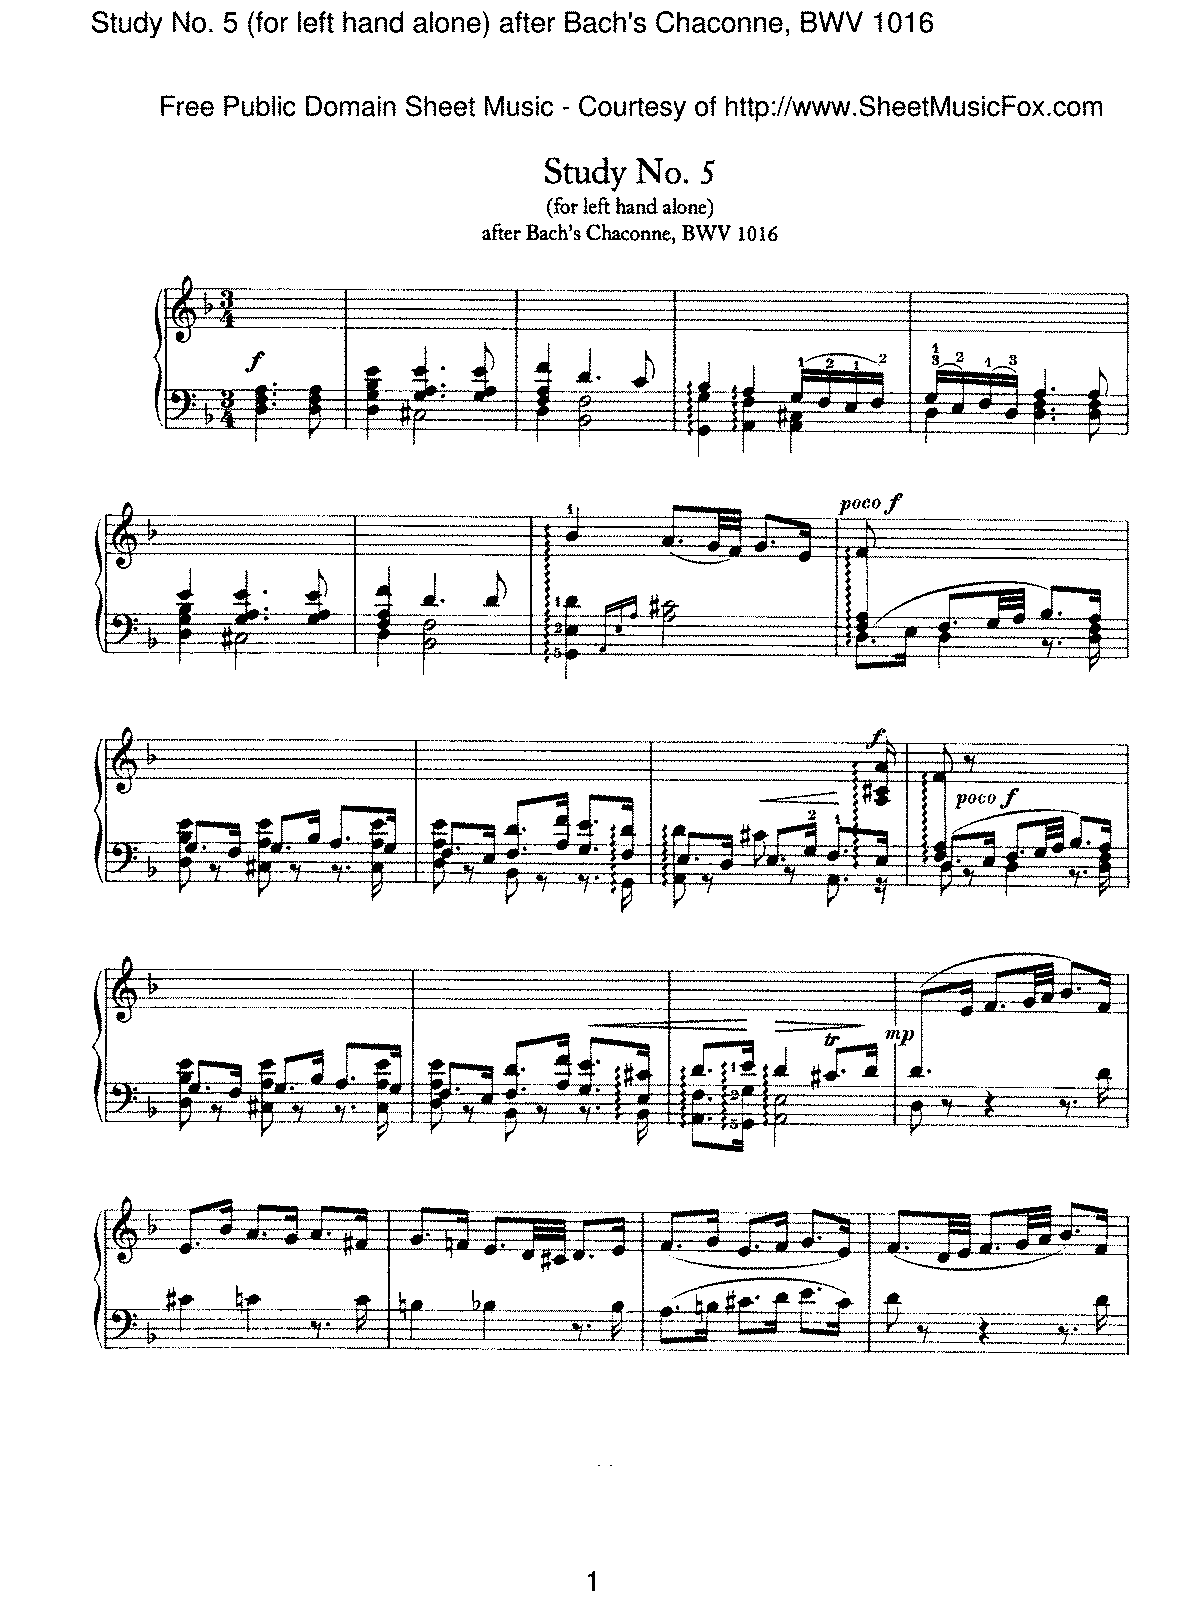 Brahms - Study No.5 (for left hand alone) after Bach's Chaconne, BWV 1016.pdf